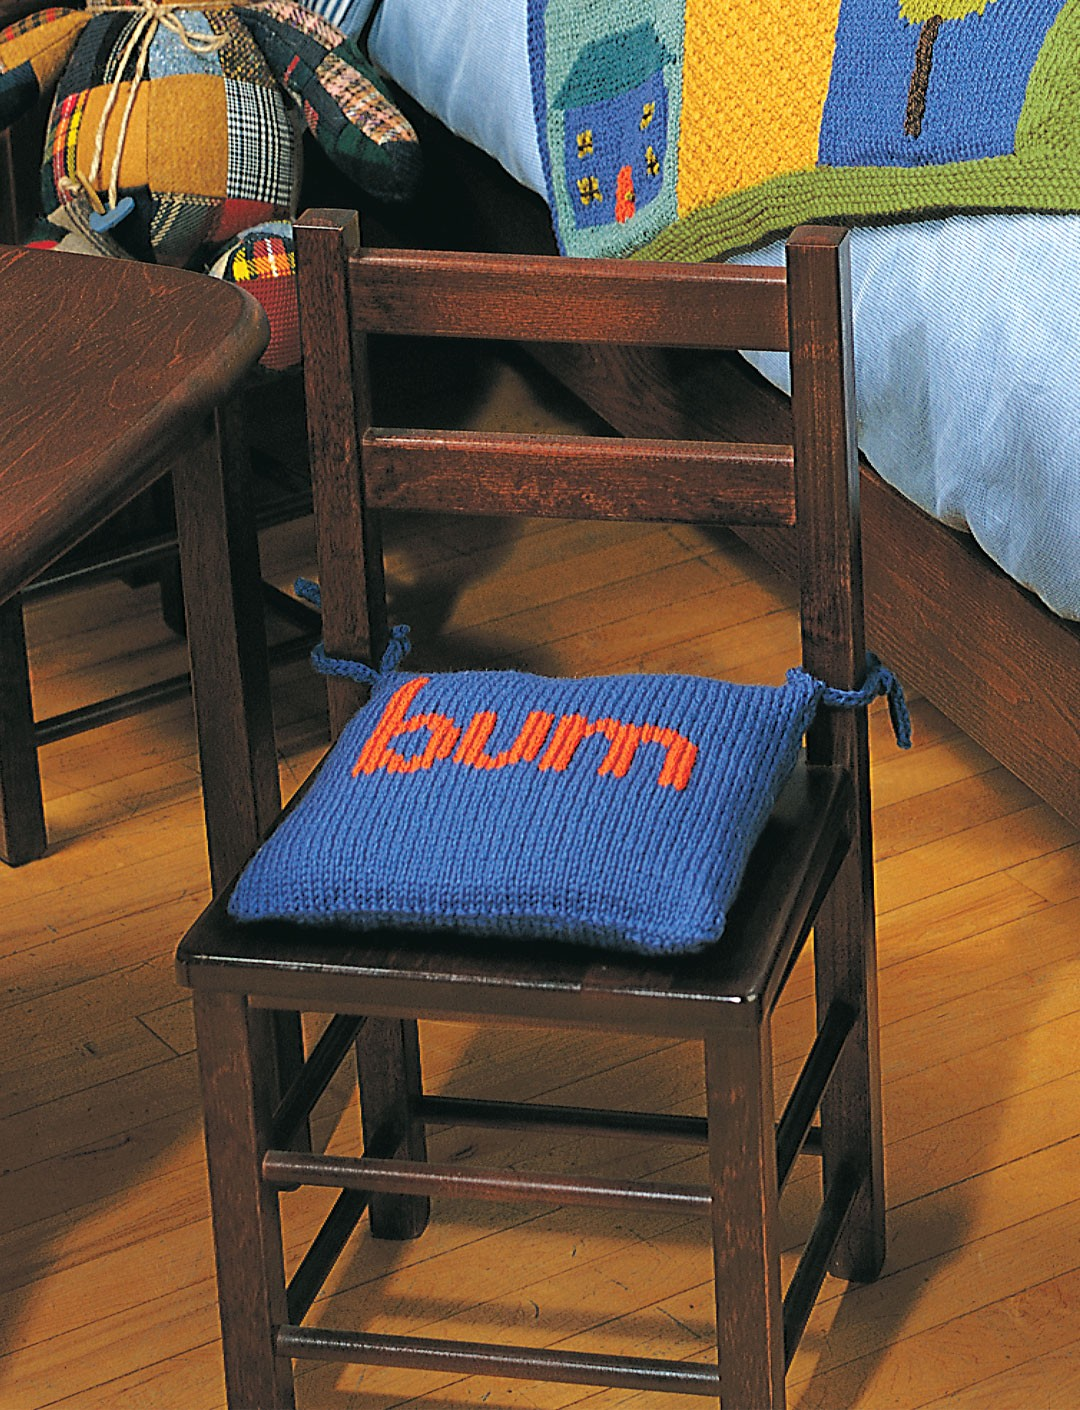 'Bum' Chair Cushion